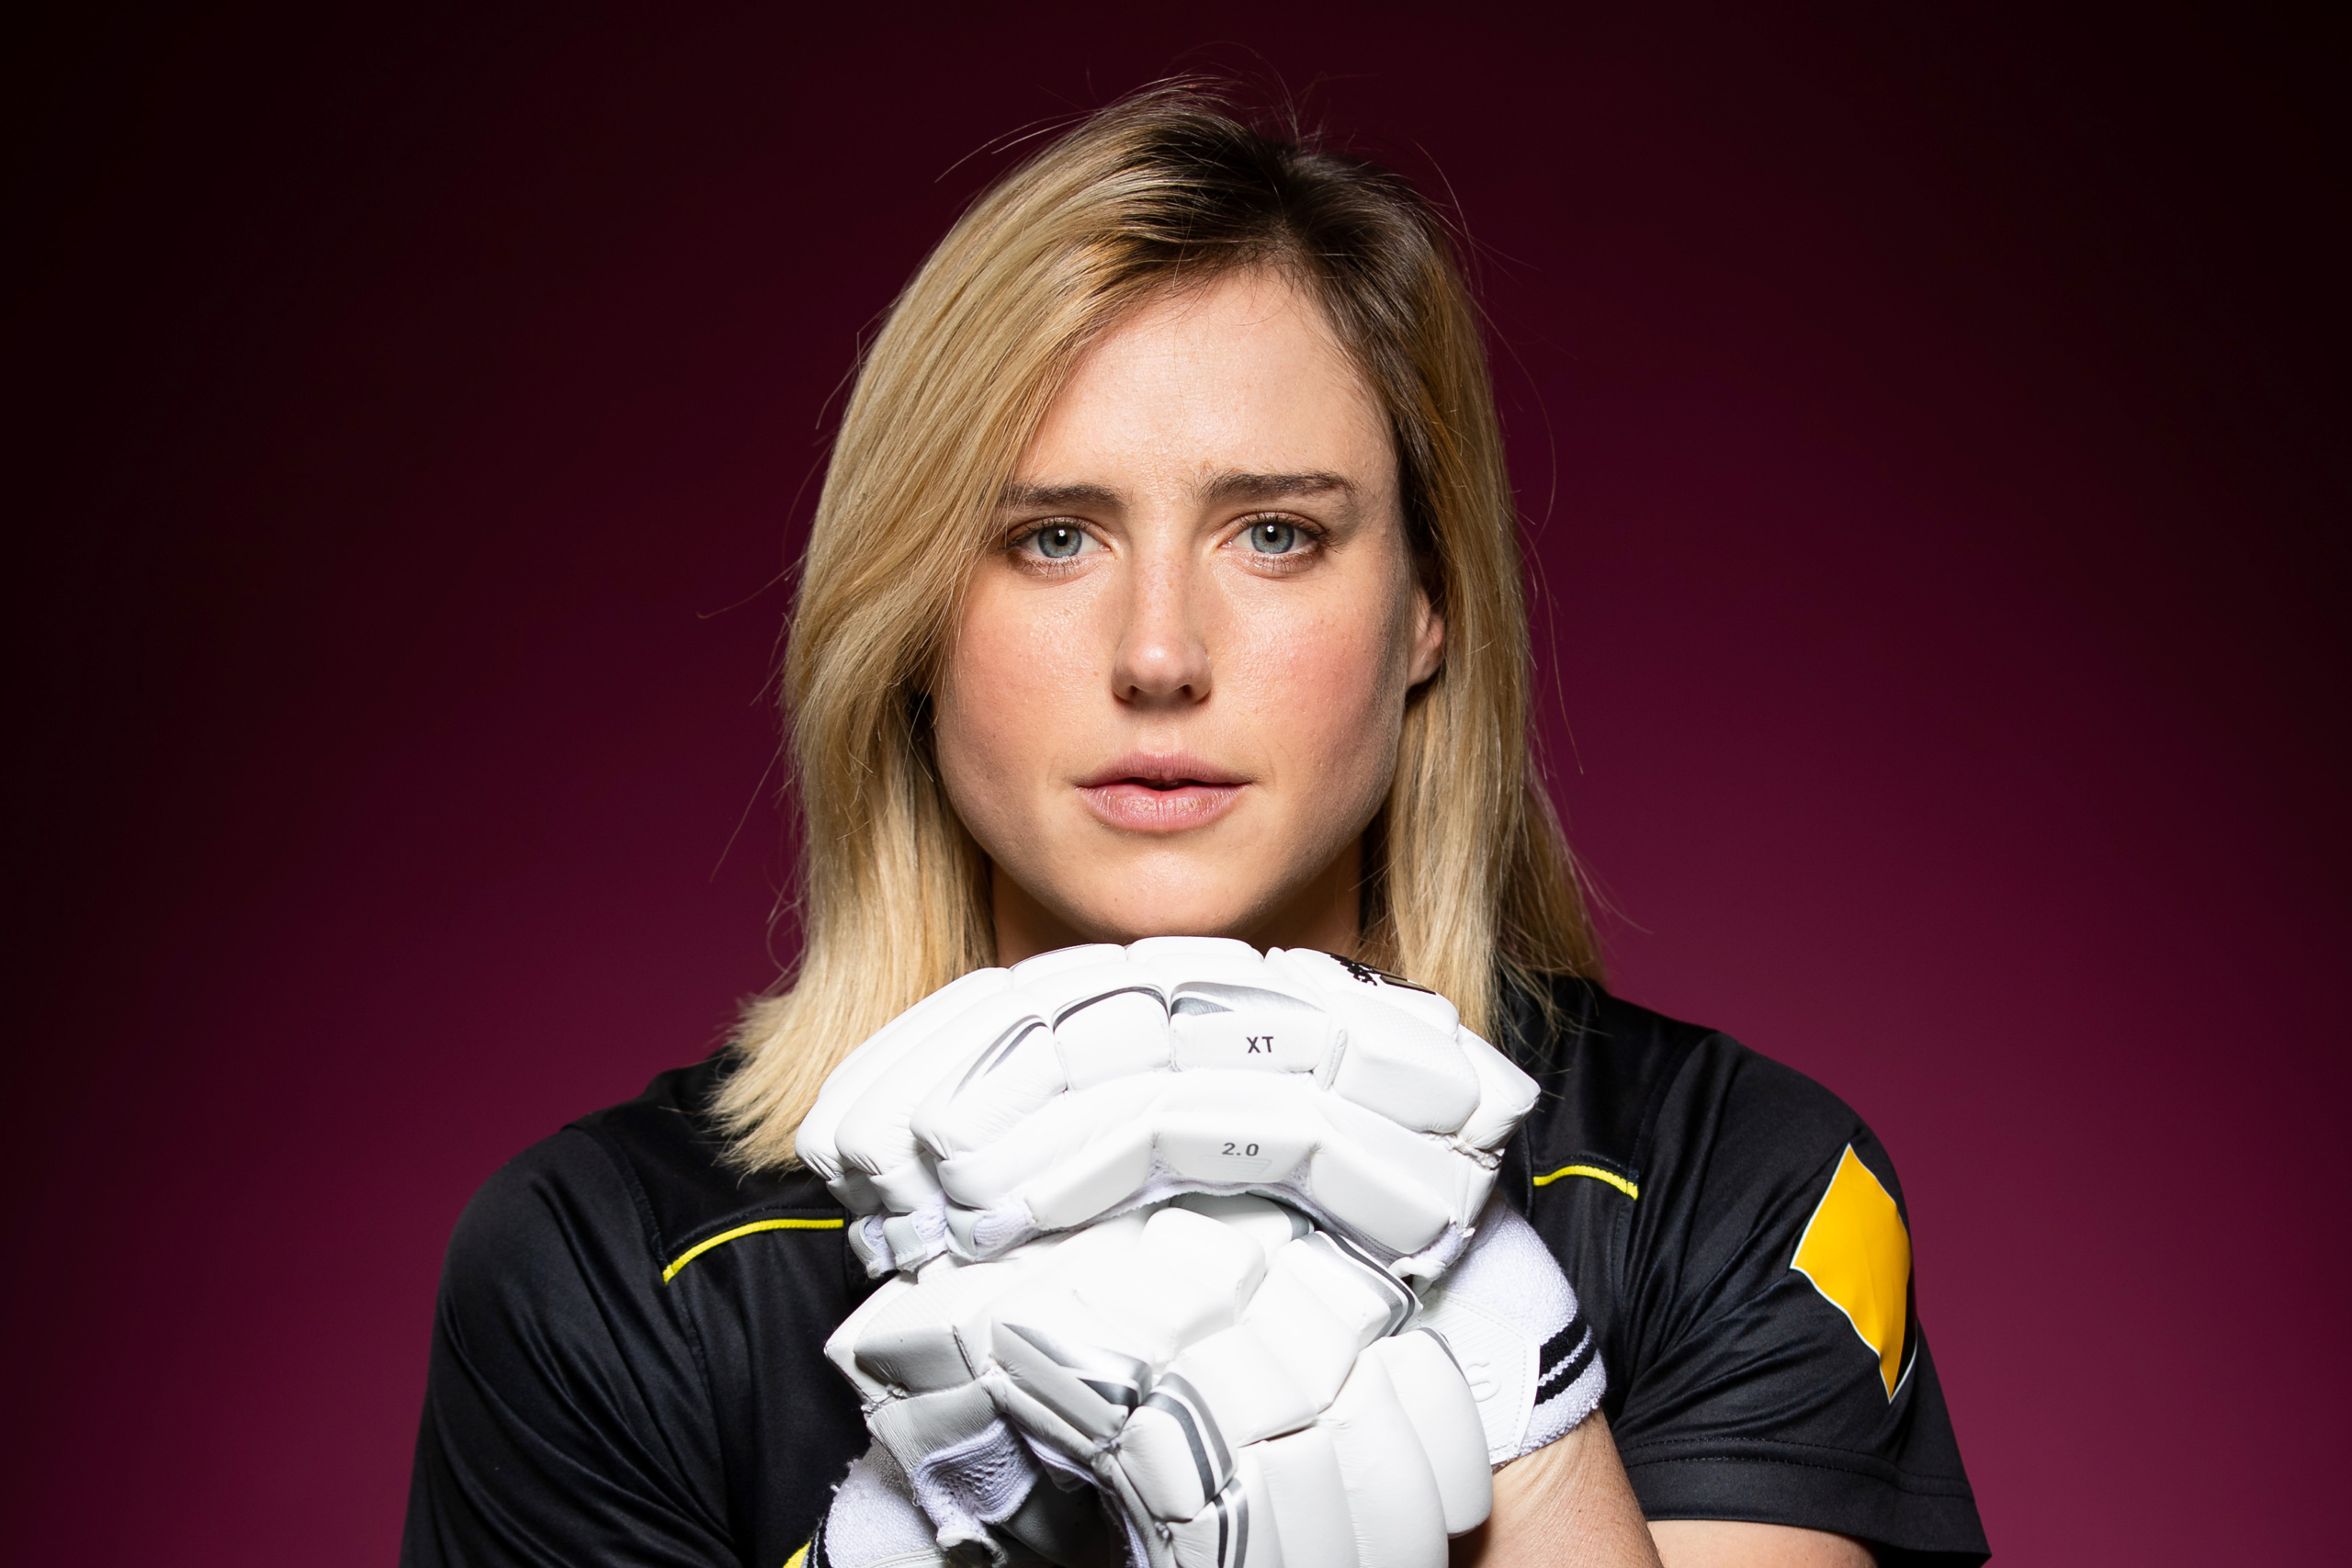 Ellyse Perry, the former Australian female cricketer, has reckoned that the Cricket Australia (CA) is ready for its first female CEO. She believes that it is the right time for her to become the CEO of CA.